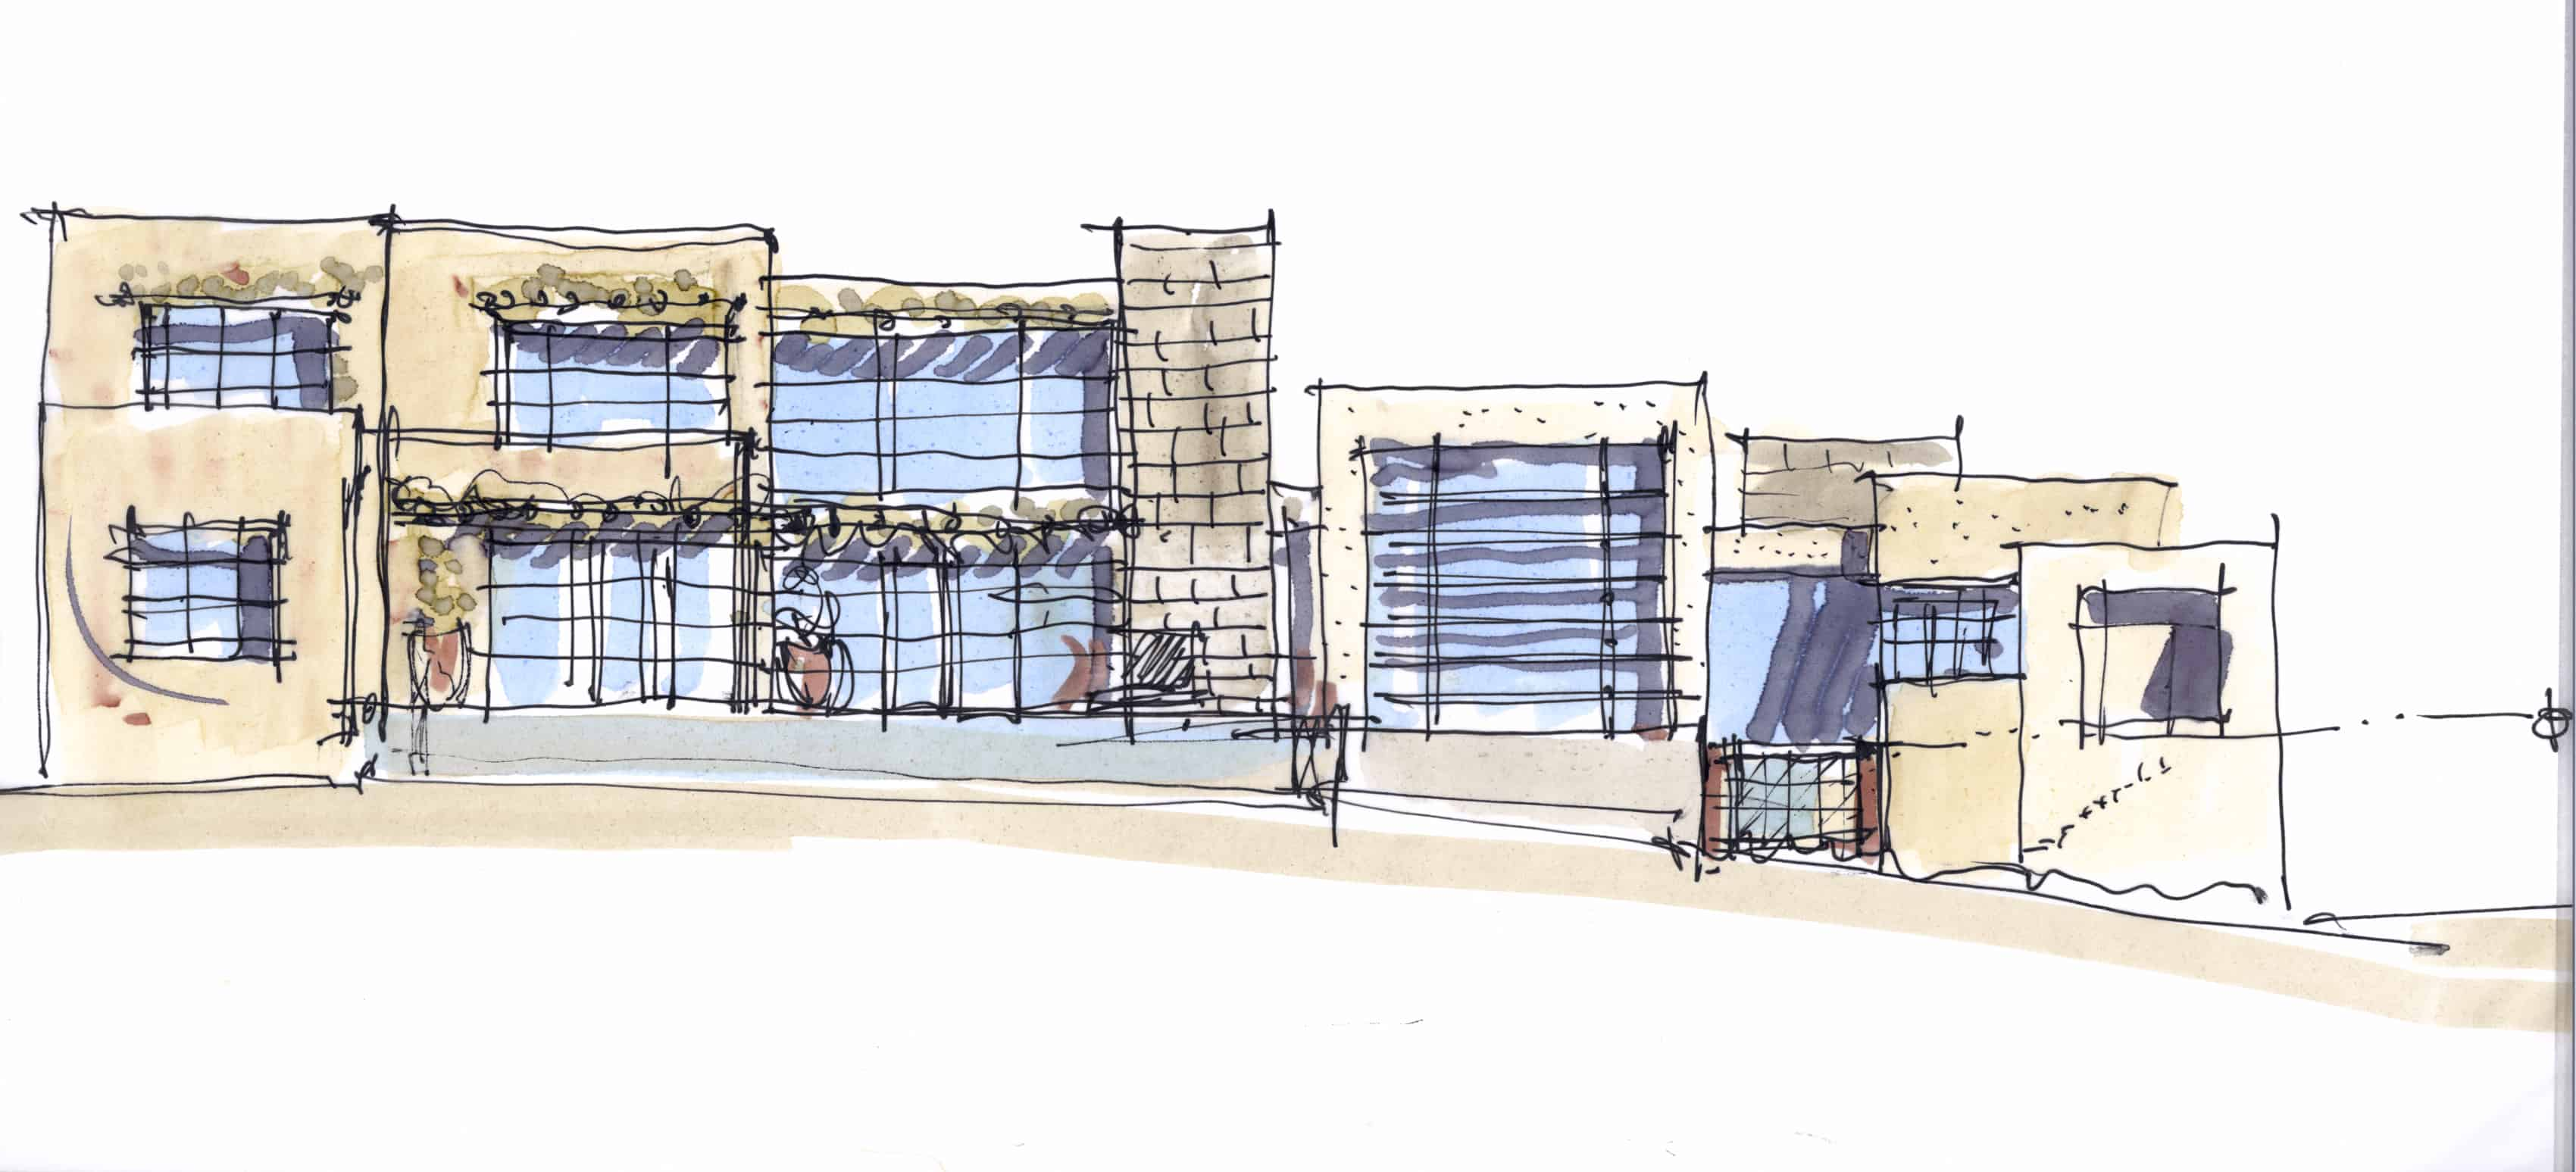 0340_Bentley Residence_Elevation Sketch 2